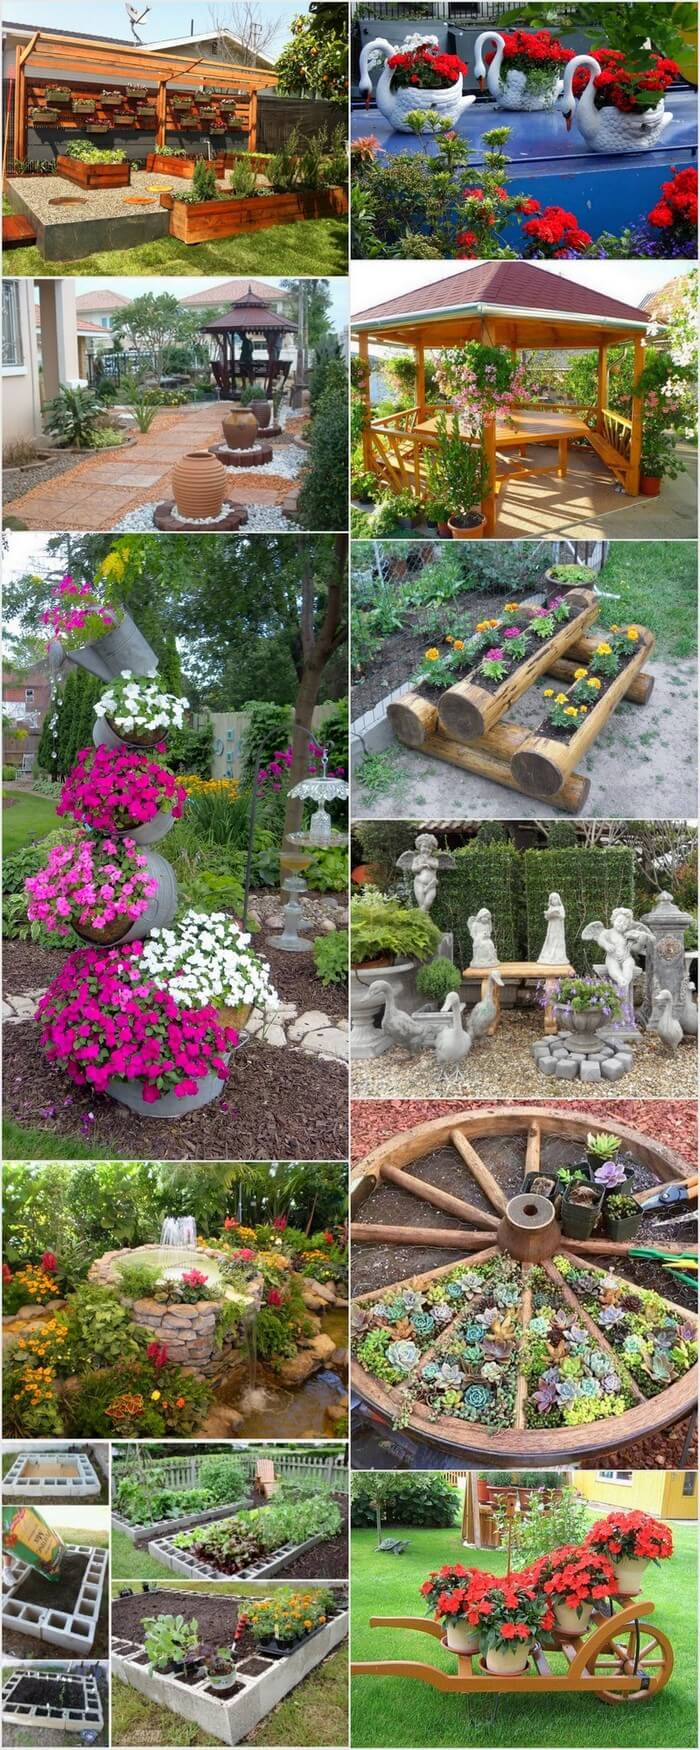 Pretty wonderful diy garden decor ideas recycled things for Homemade garden decorations